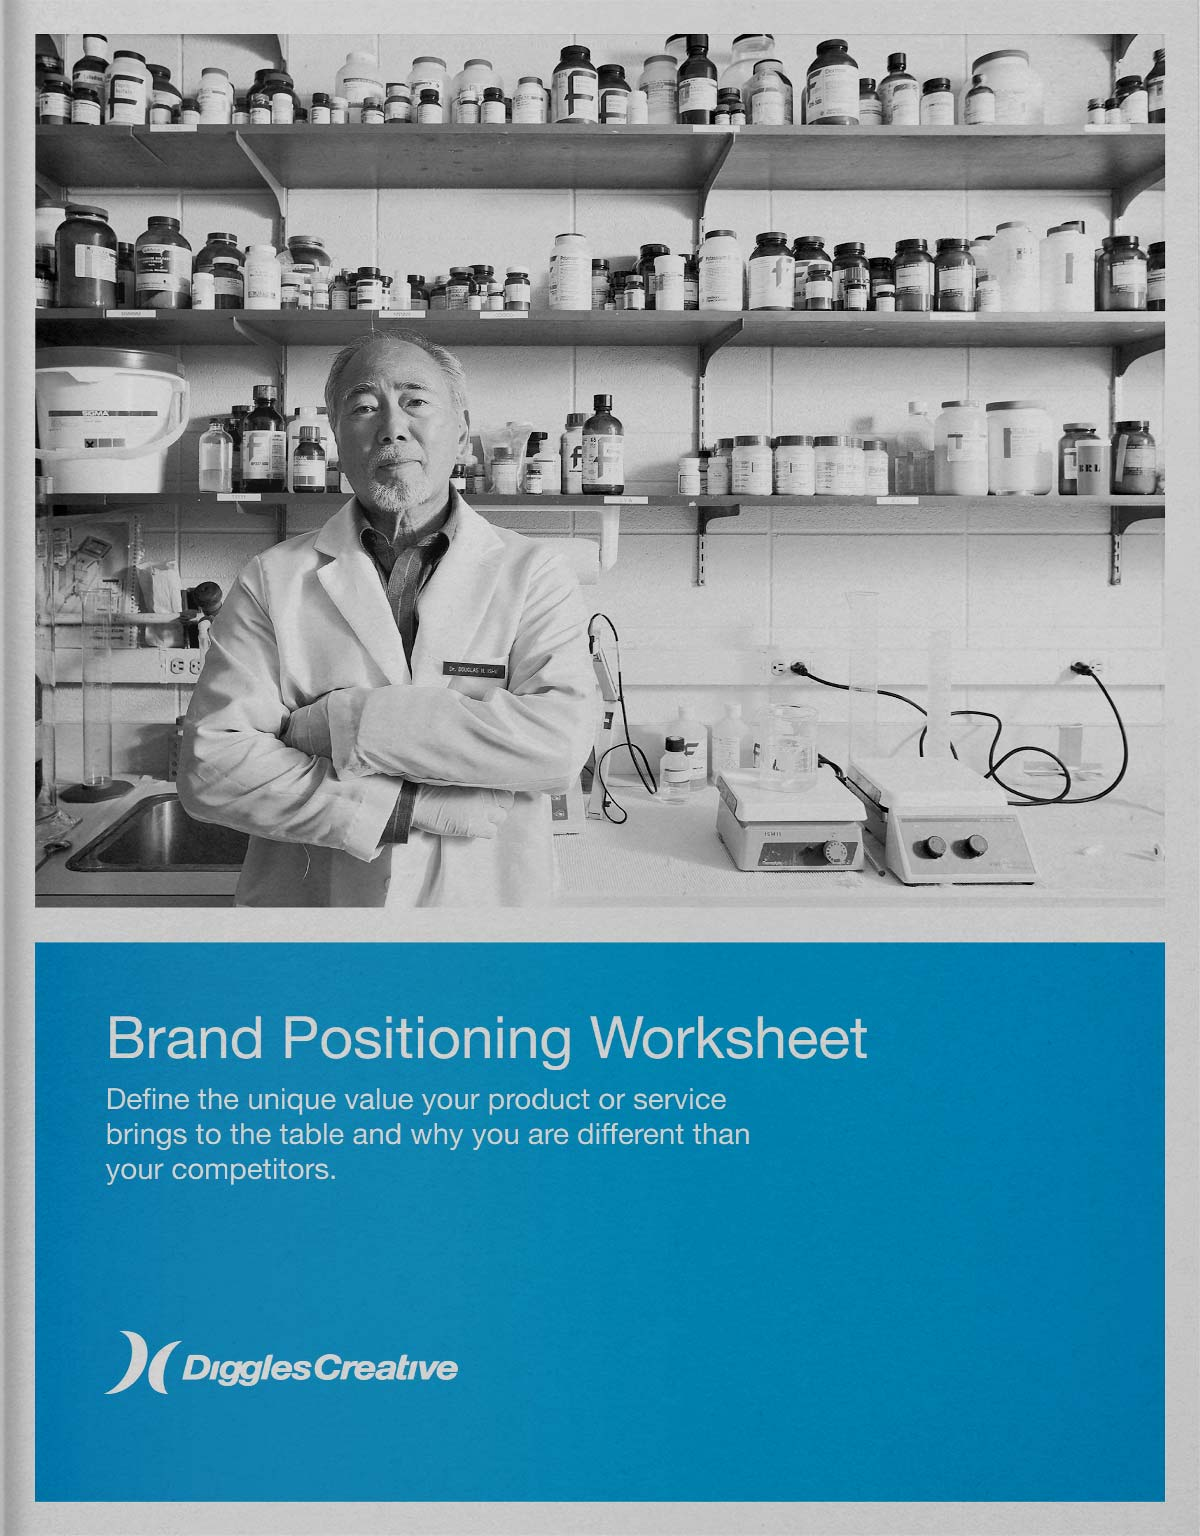 Worksheet - Brand Positioning